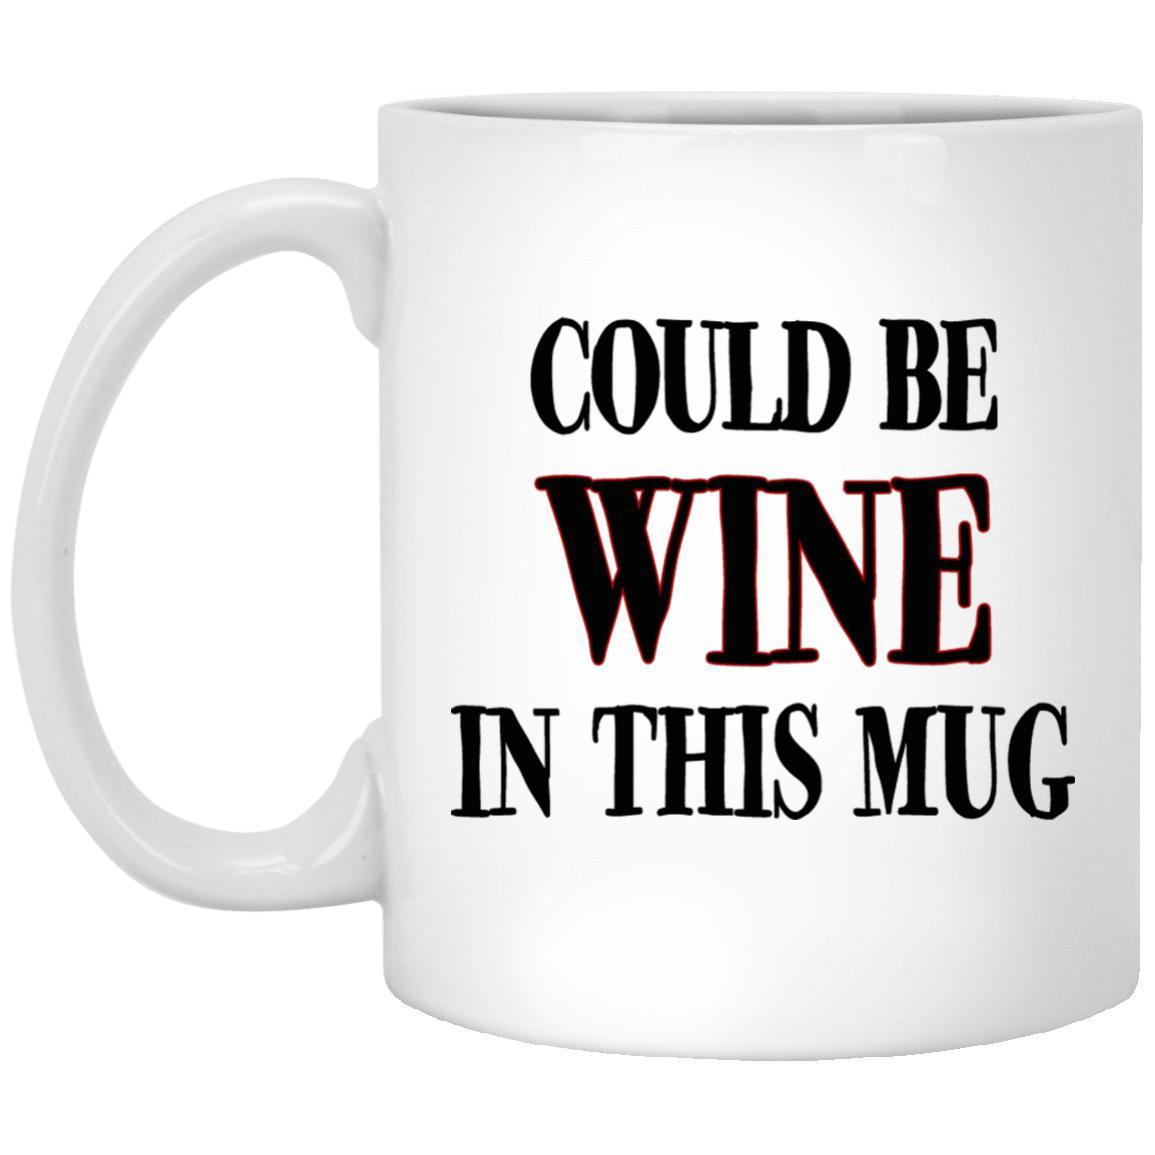 Could Be Wine Mugs - Great gift for the wine lover